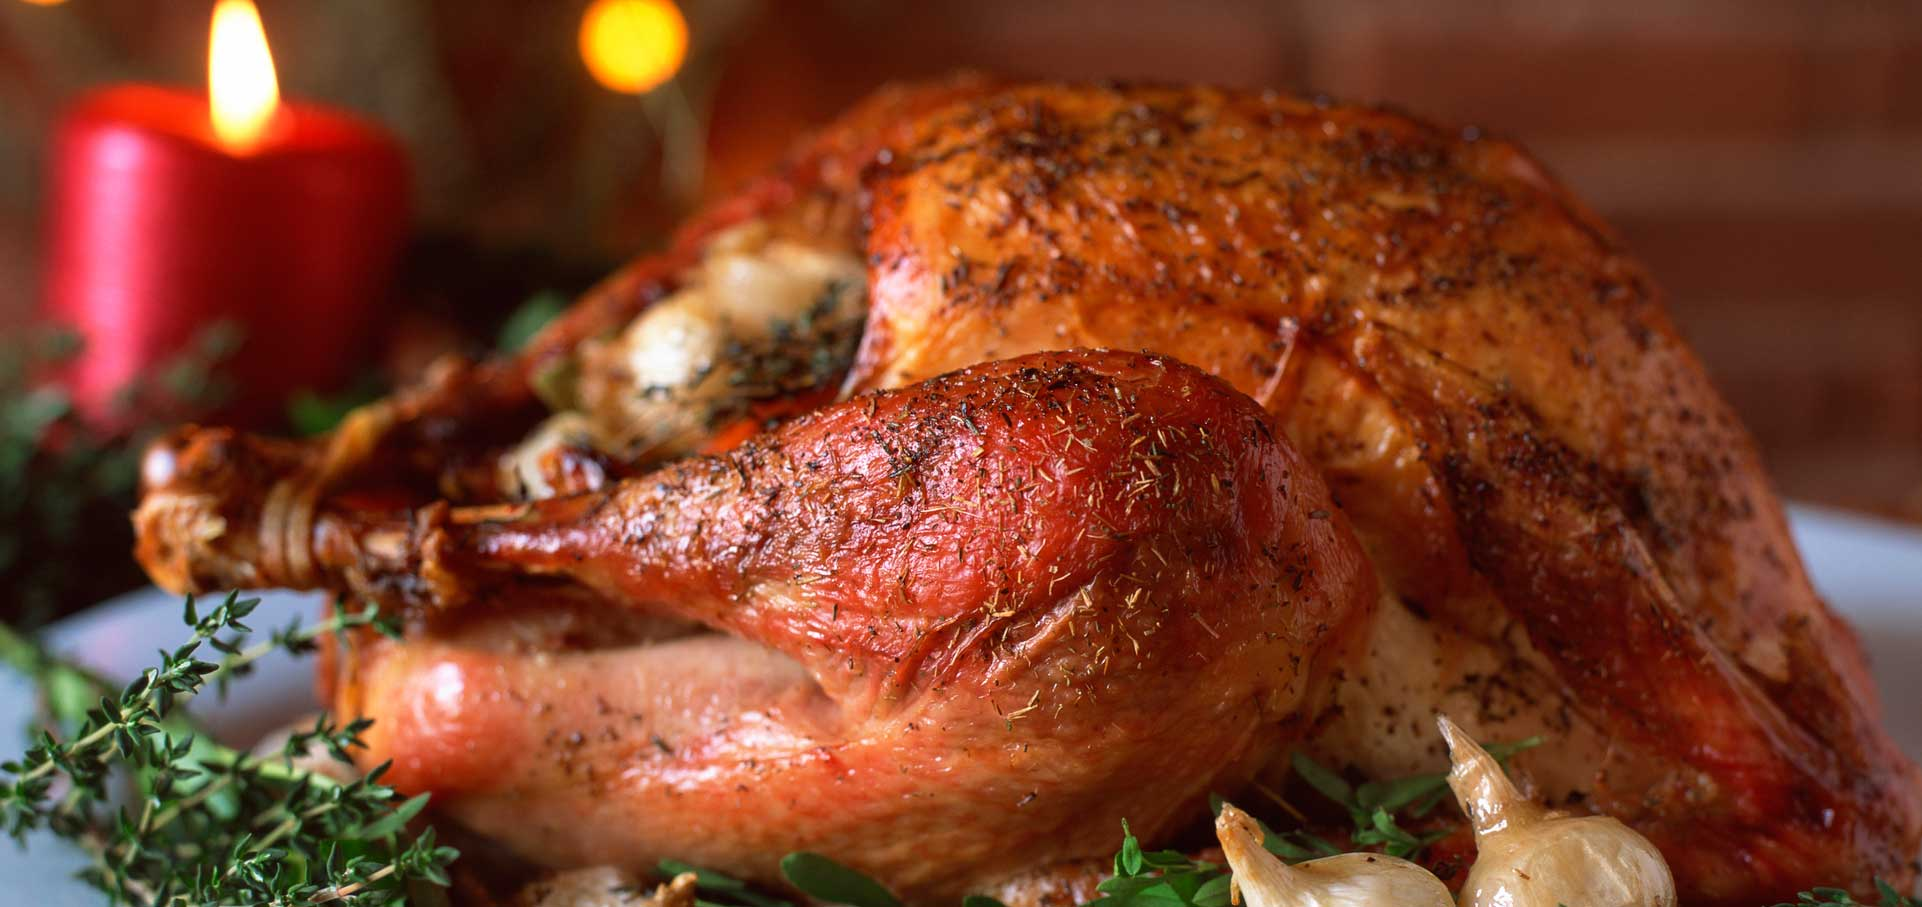 4f4a4f4c0c0f2 The Great Thanksgiving Chemistry Debates - inChemistry